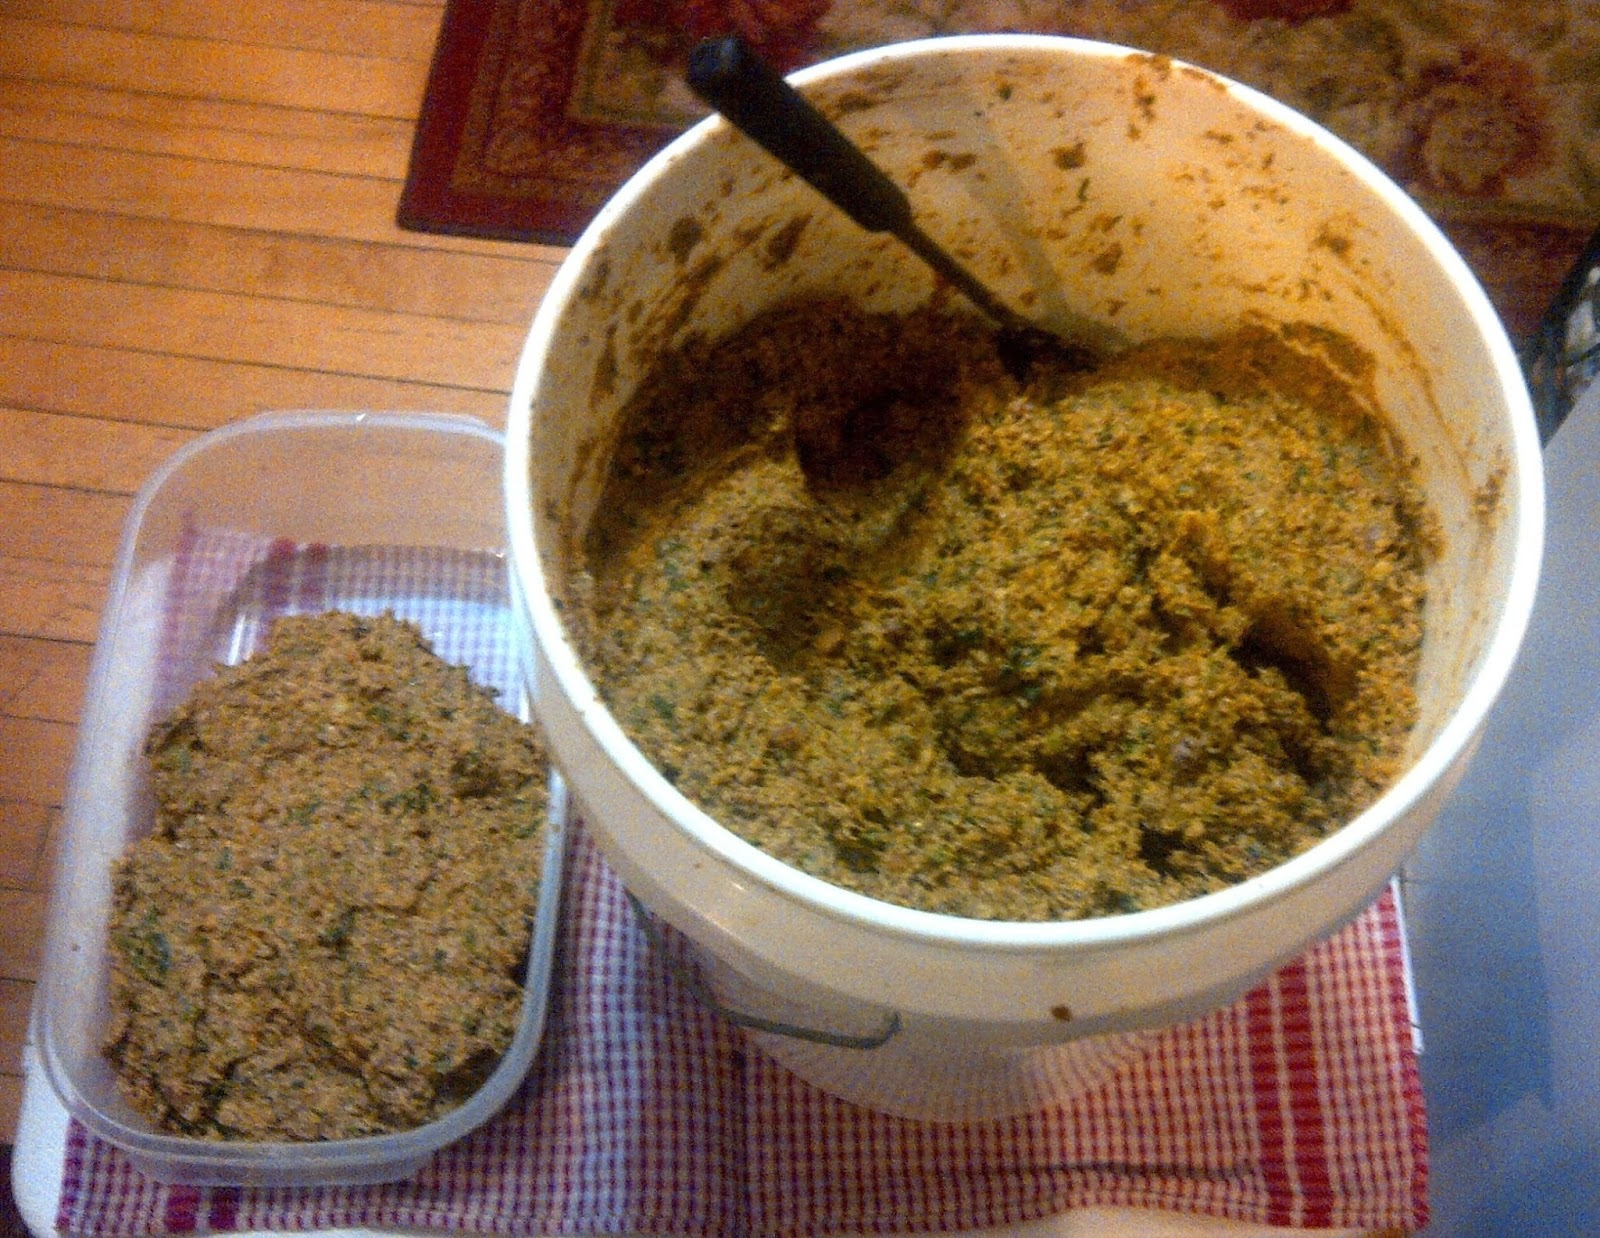 Ottawa valley dog whisperer home made diy dog cat food recipes ottawa valley dog whisperer home made diy dog cat food recipes grain free for the health of your dog cat forumfinder Image collections